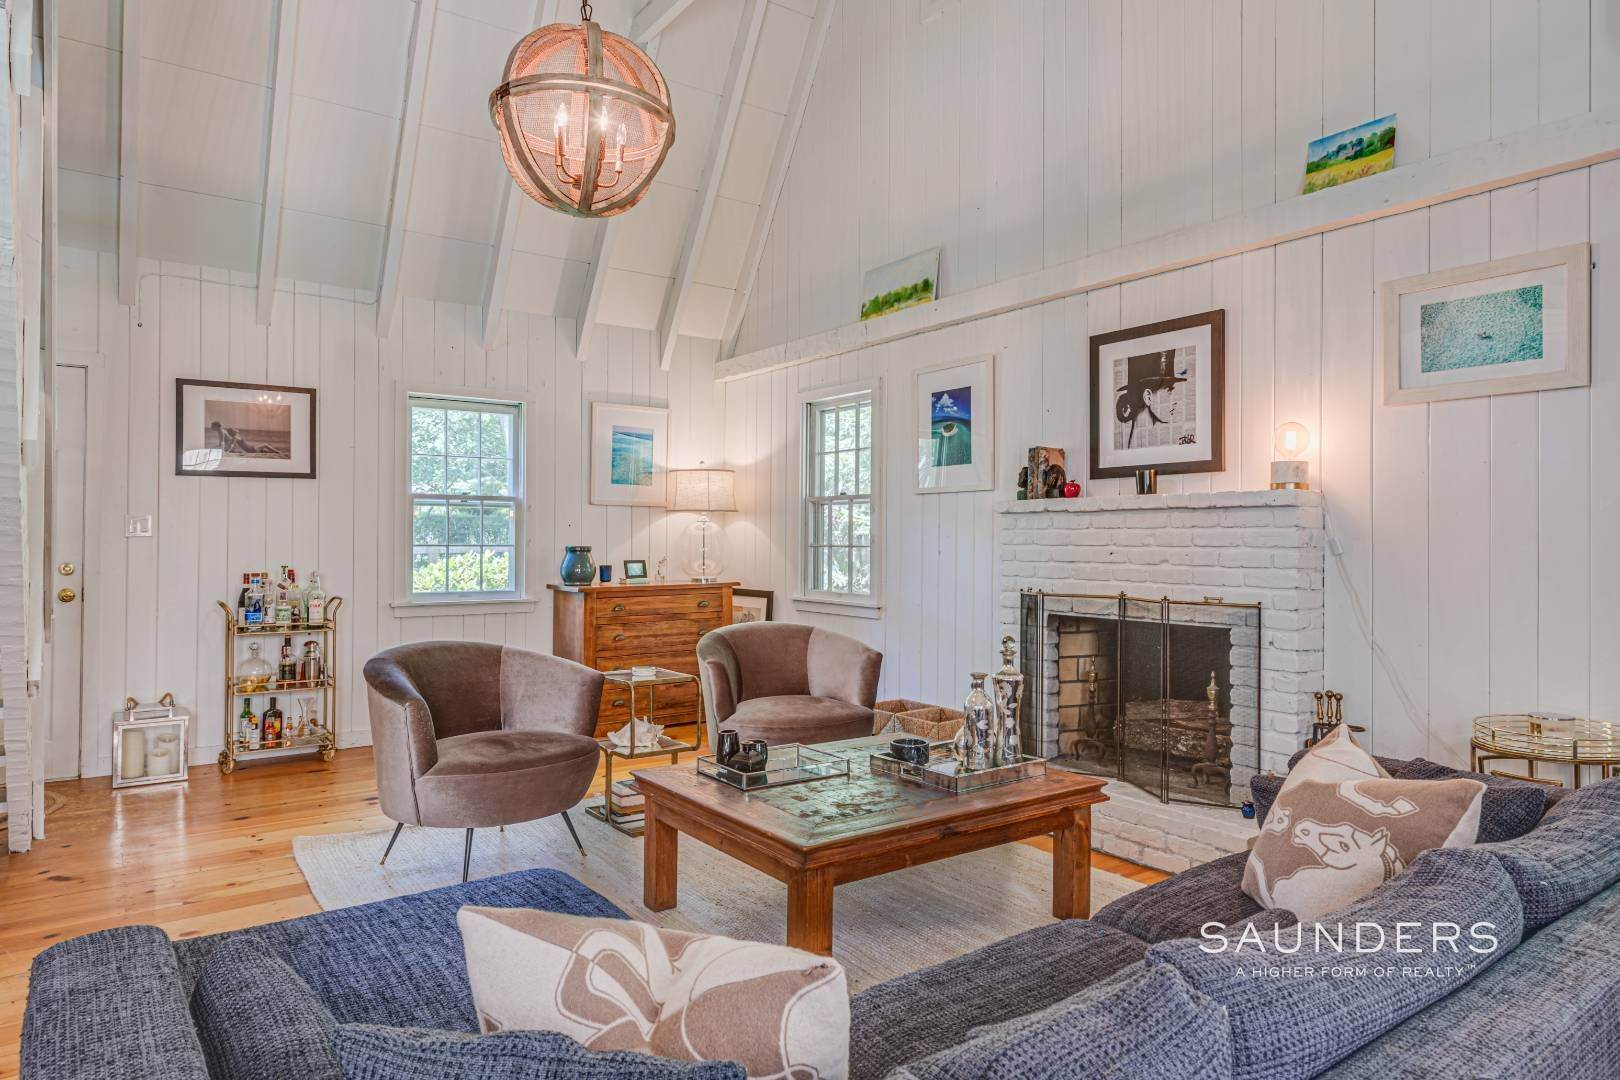 5. Single Family Homes for Sale at Bucolic South Of The Highway In Wainscott 6 Windsor Lane, Wainscott, East Hampton Town, NY 11975